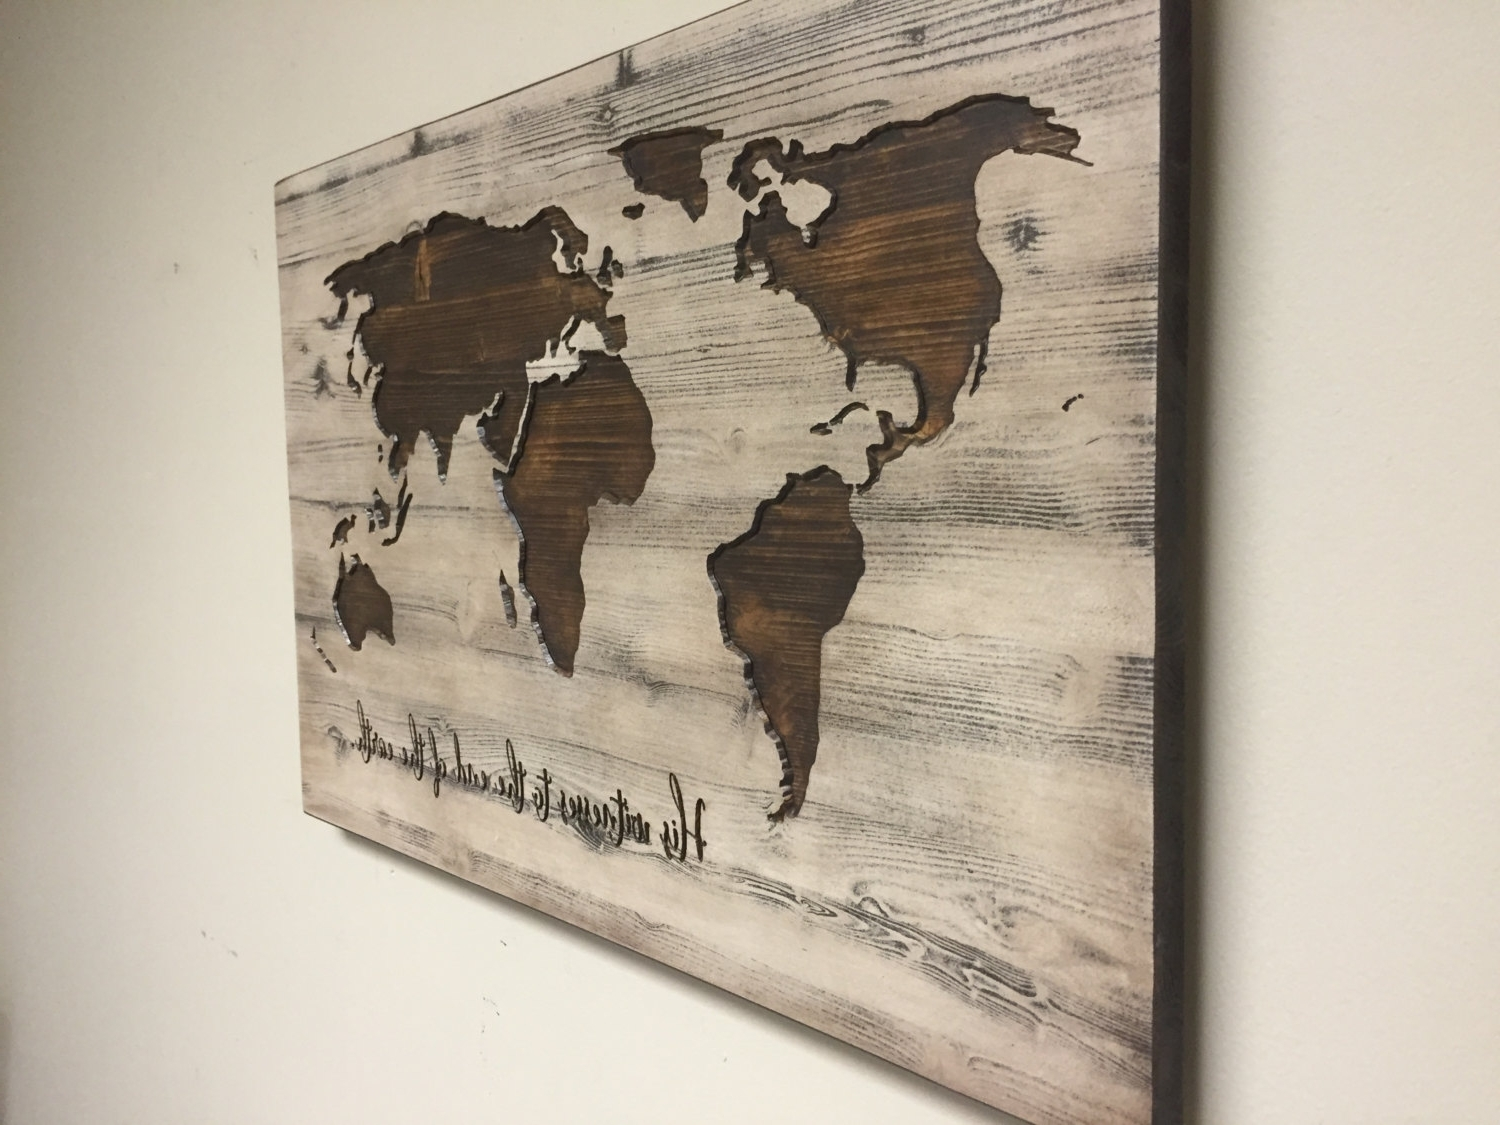 Old World Map Wall Art For Preferred World Map Wall Art Spiritual Vintage Carved Wood His With (View 4 of 15)